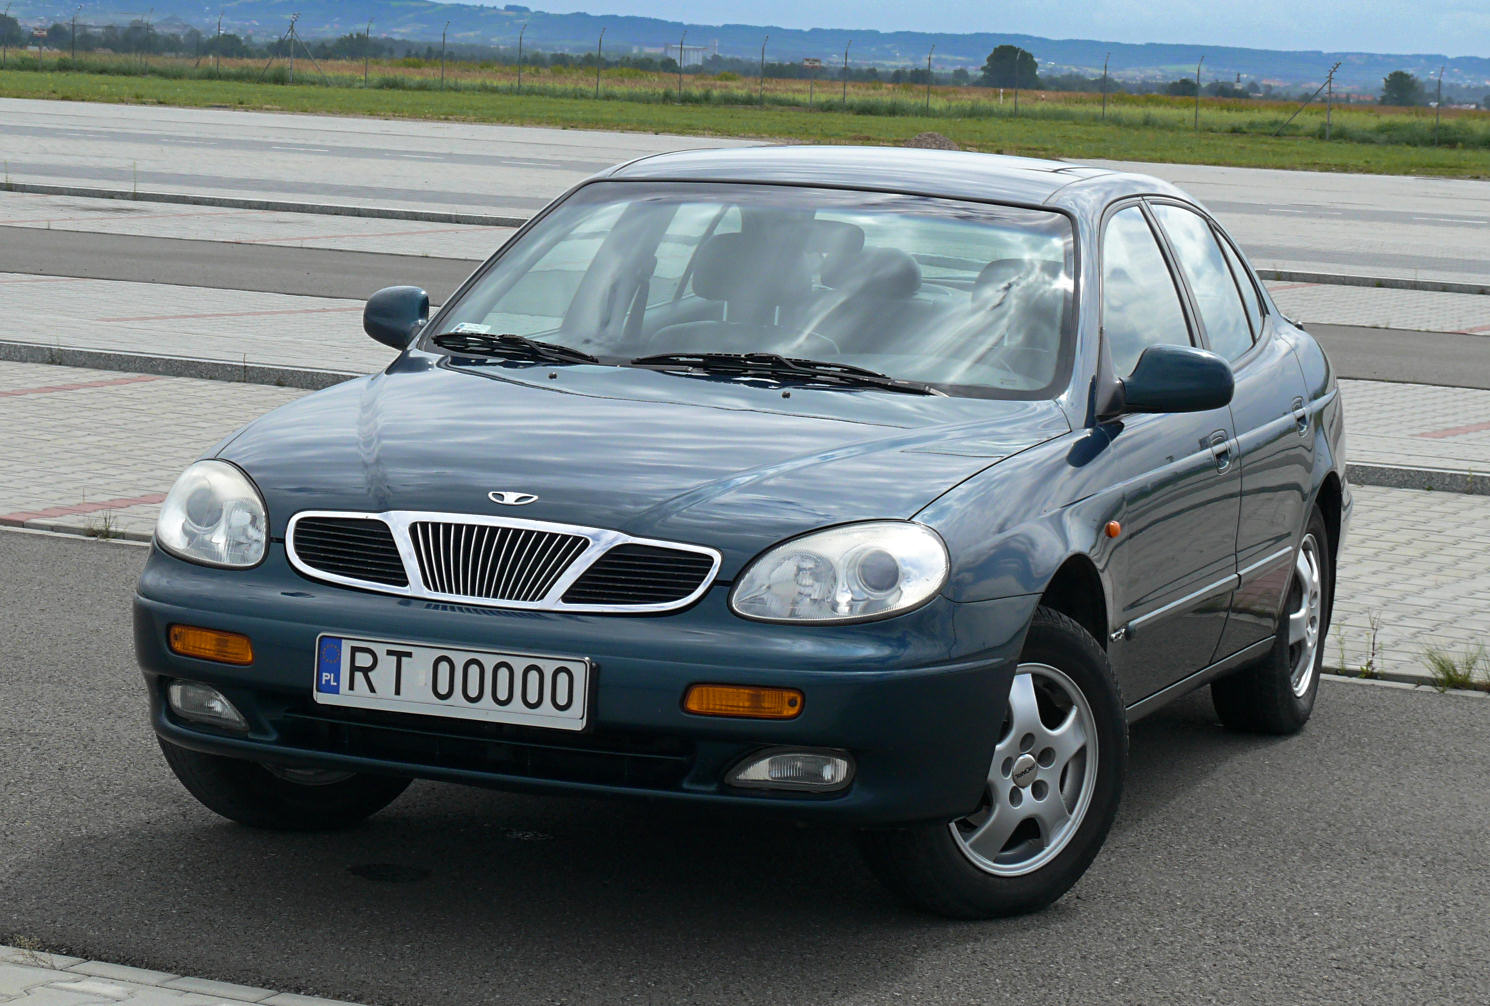 File:1999 Daewoo Leganza.jpg - Wikipedia, the free encyclopedia